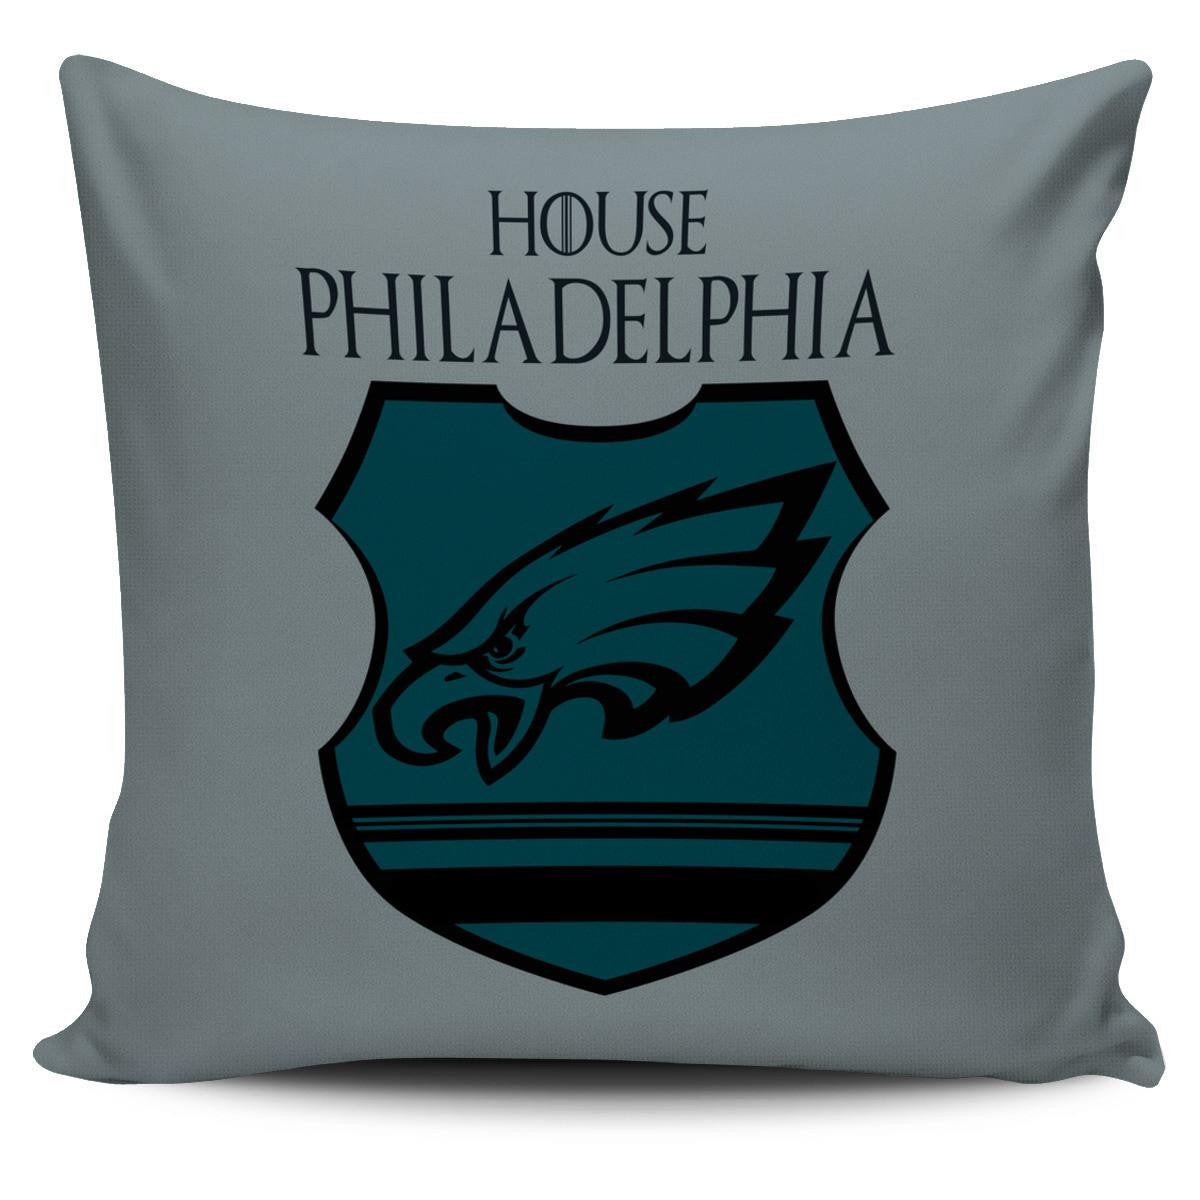 Philadelphia Collector Pillowcase